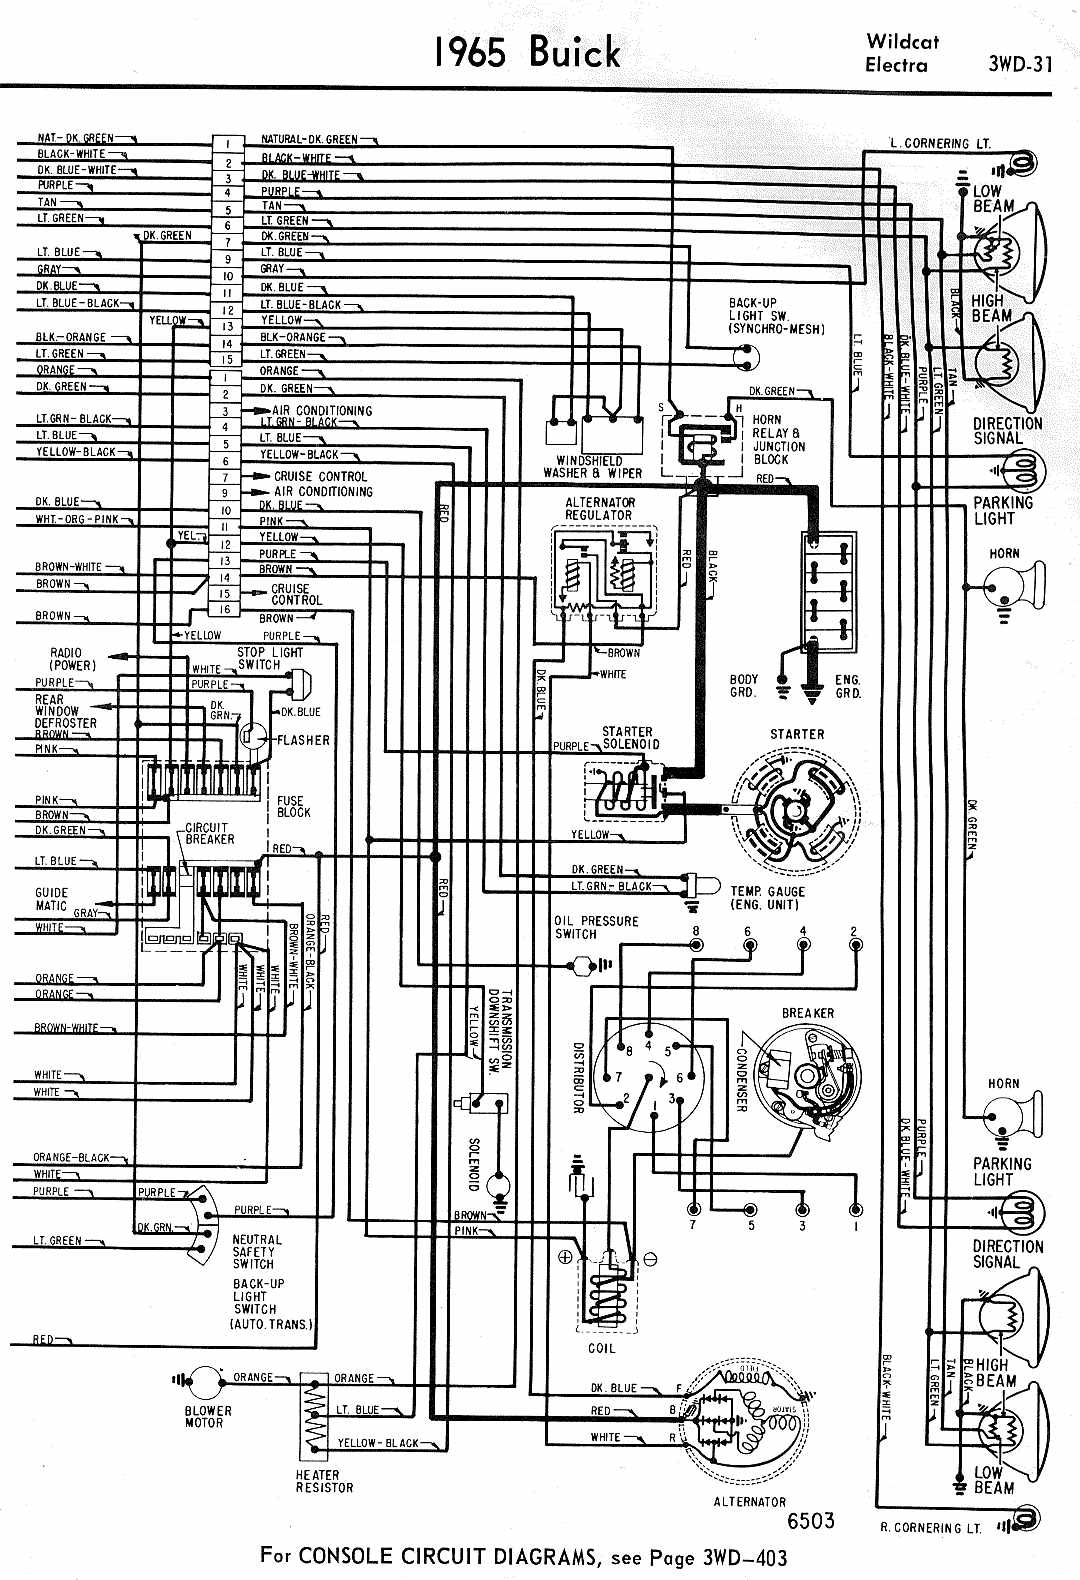 Buick Car Manuals Wiring Diagrams Pdf Fault Codes 1964 Volkswagen Ignition Diagram Download